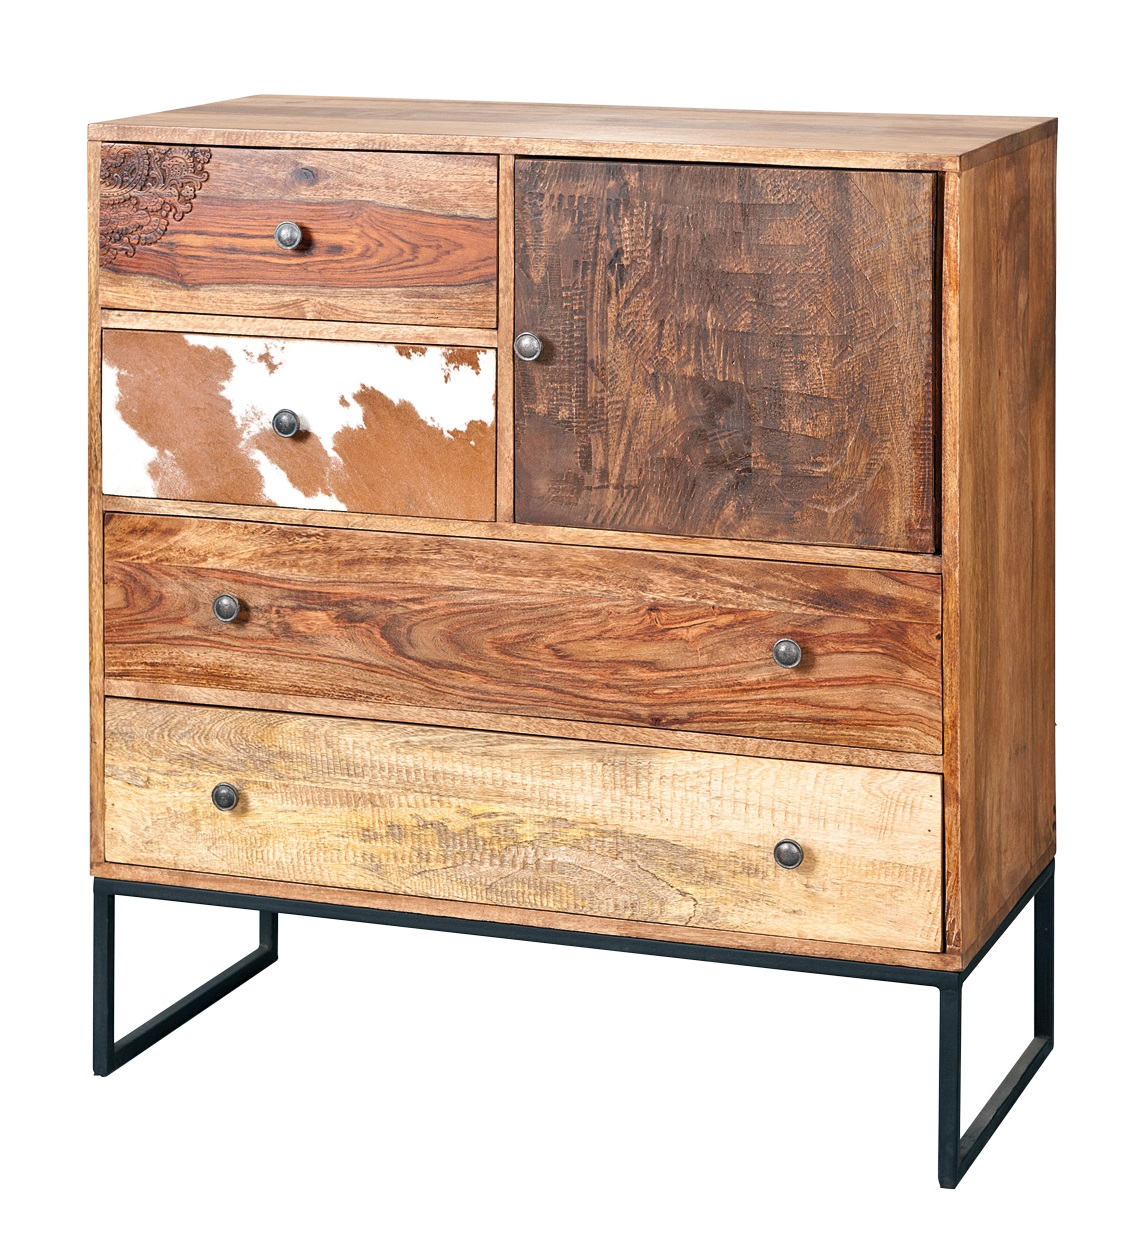 Wood Table Dresser ~ Natural look chest of drawers in mango wood furniture